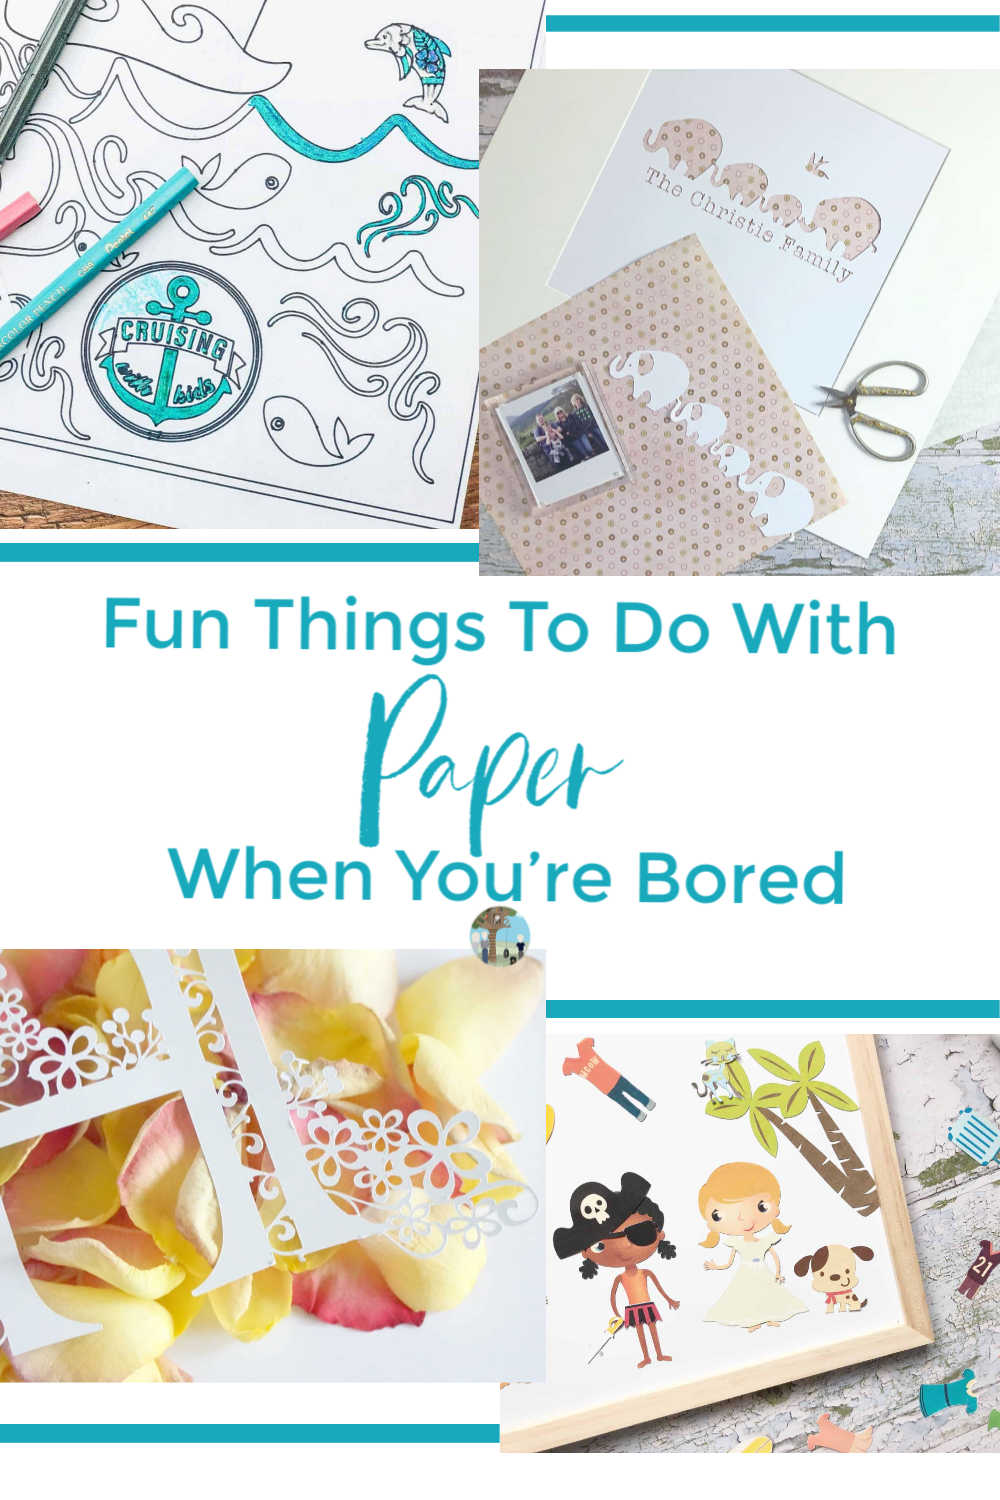 Fun Things To Do With Paper When You're Bored, great paper craft ideas for families, kids and teens